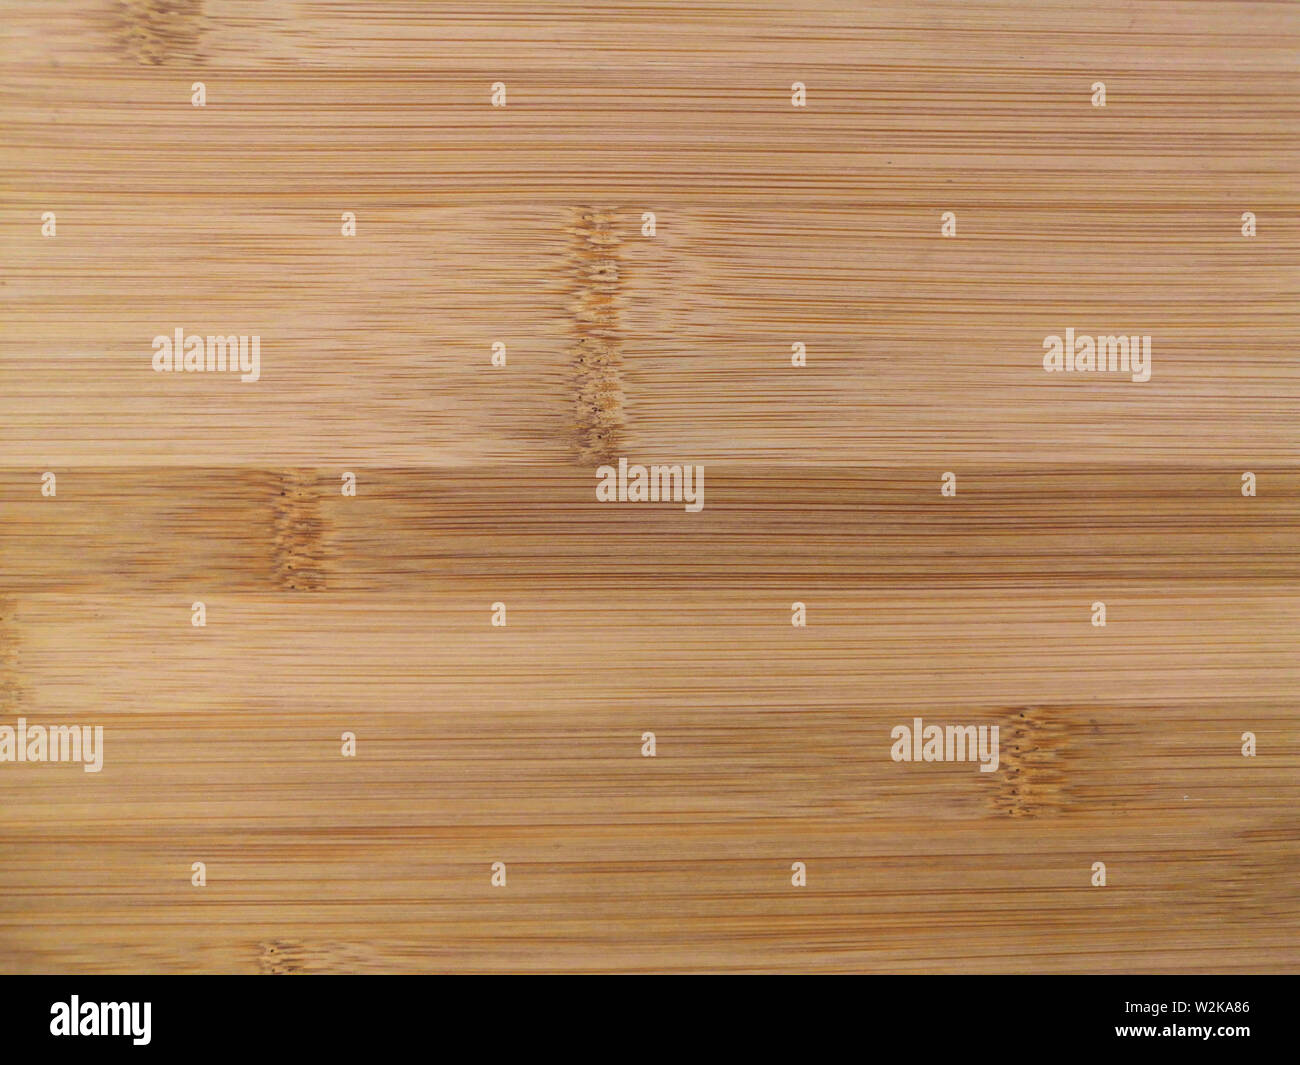 Bamboo Cutting Board Texture, Wooden Background - Stock Image